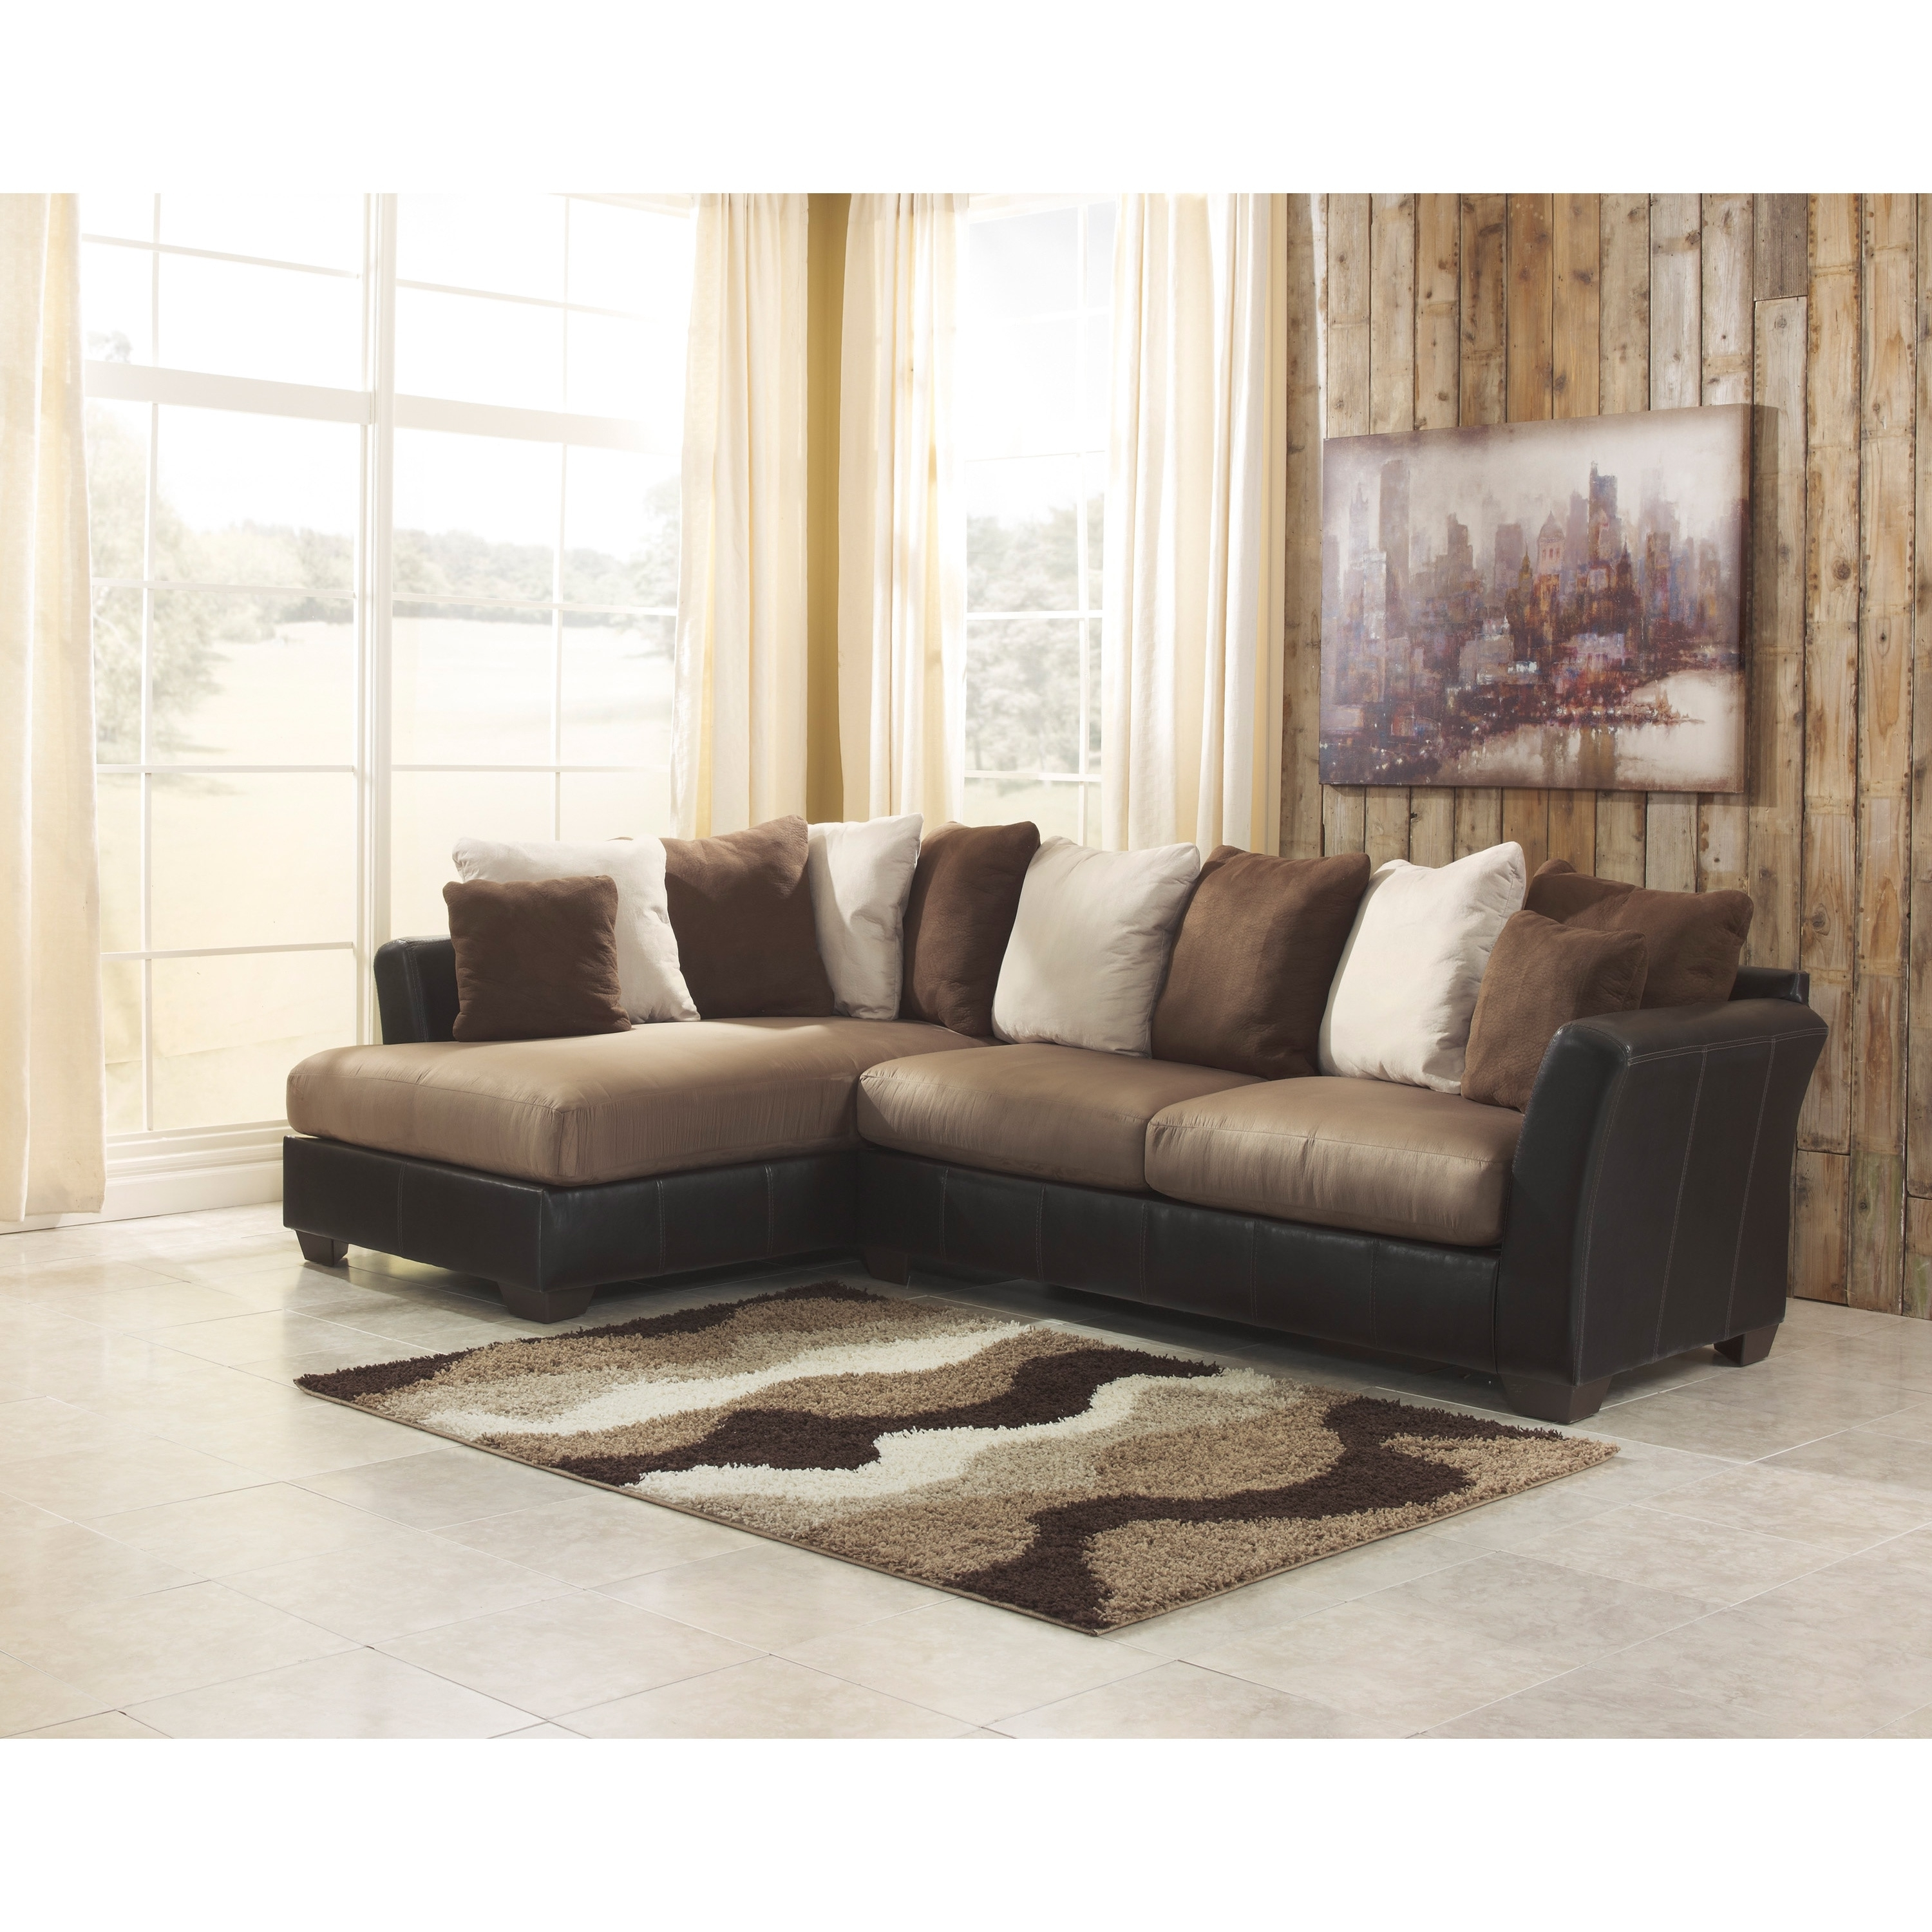 Signature Designashley Masoli 2 Piece Mocha Corner Chaise And With Regard To Current 2 Piece Sectionals With Chaise (View 11 of 15)